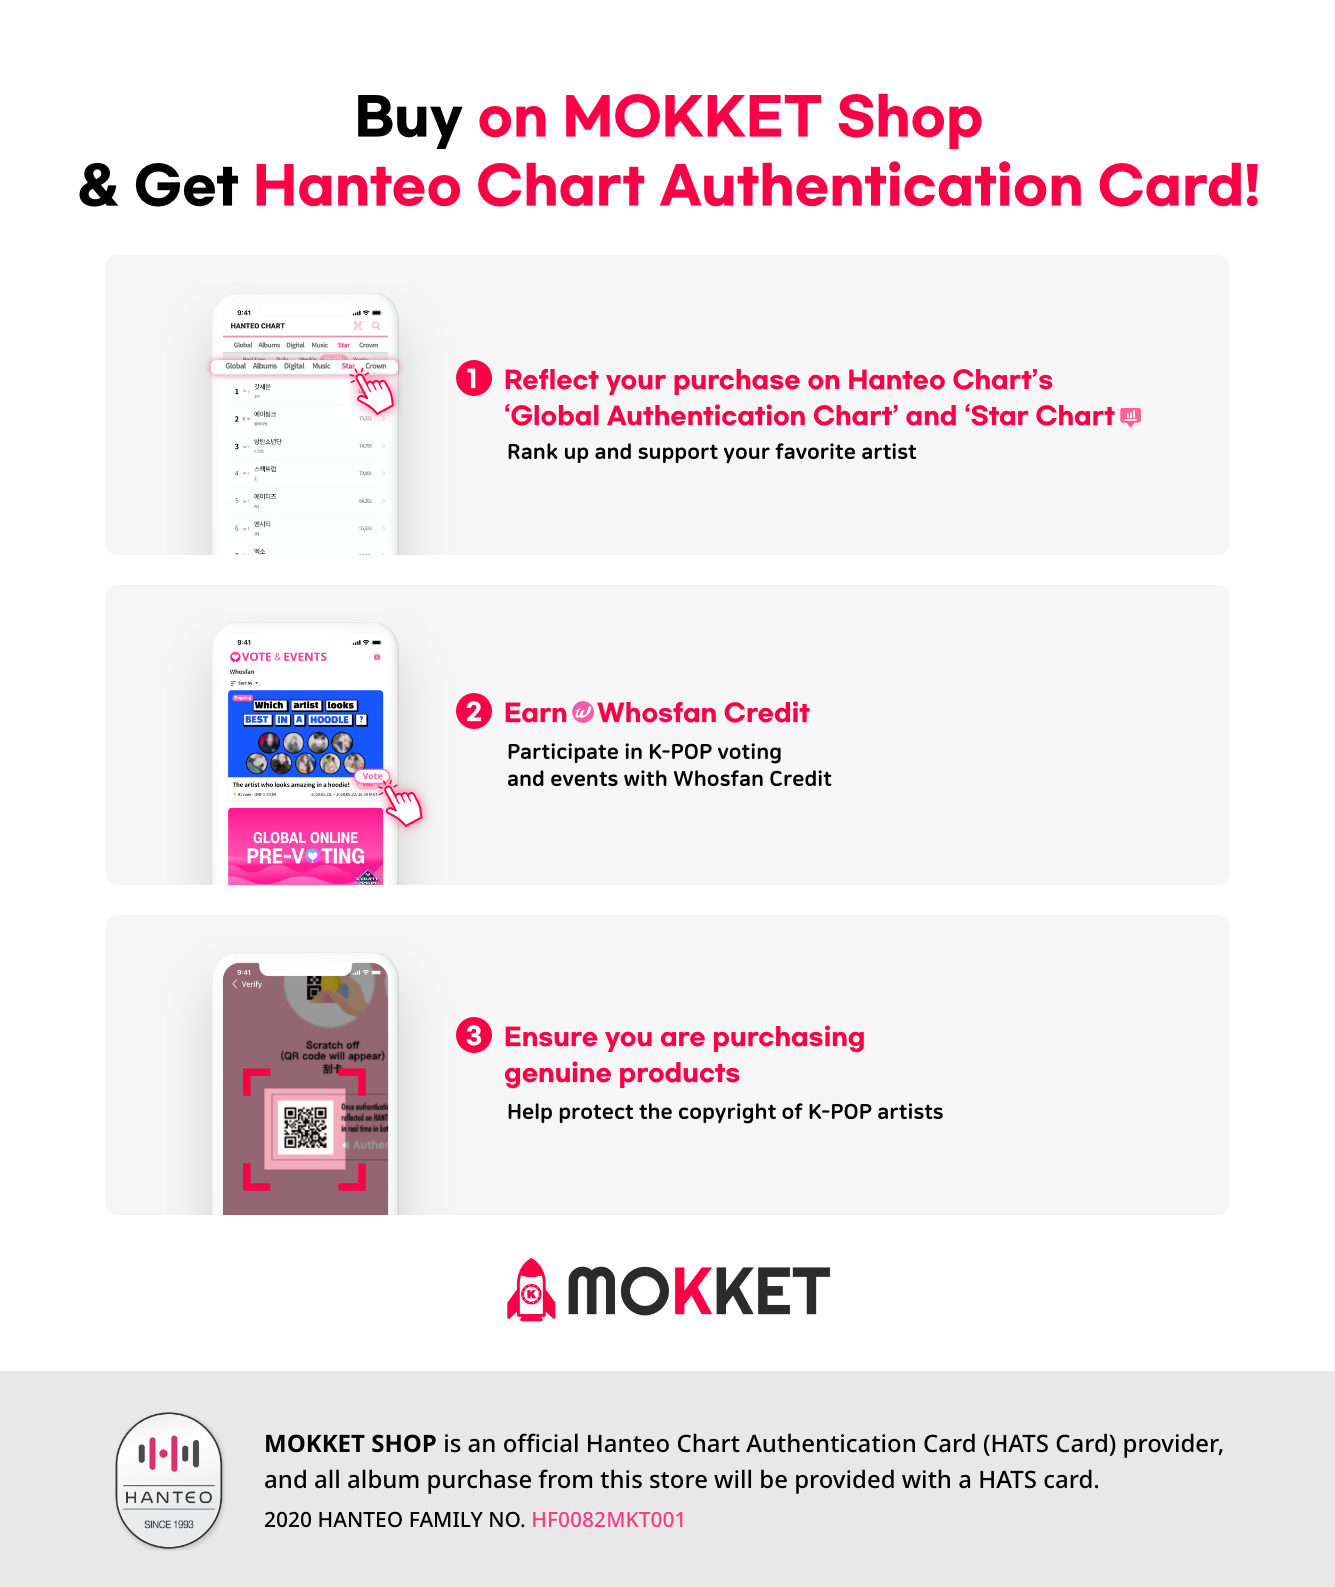 Buy on Mokket Shop and get Hanteo Chart Authentication Card!